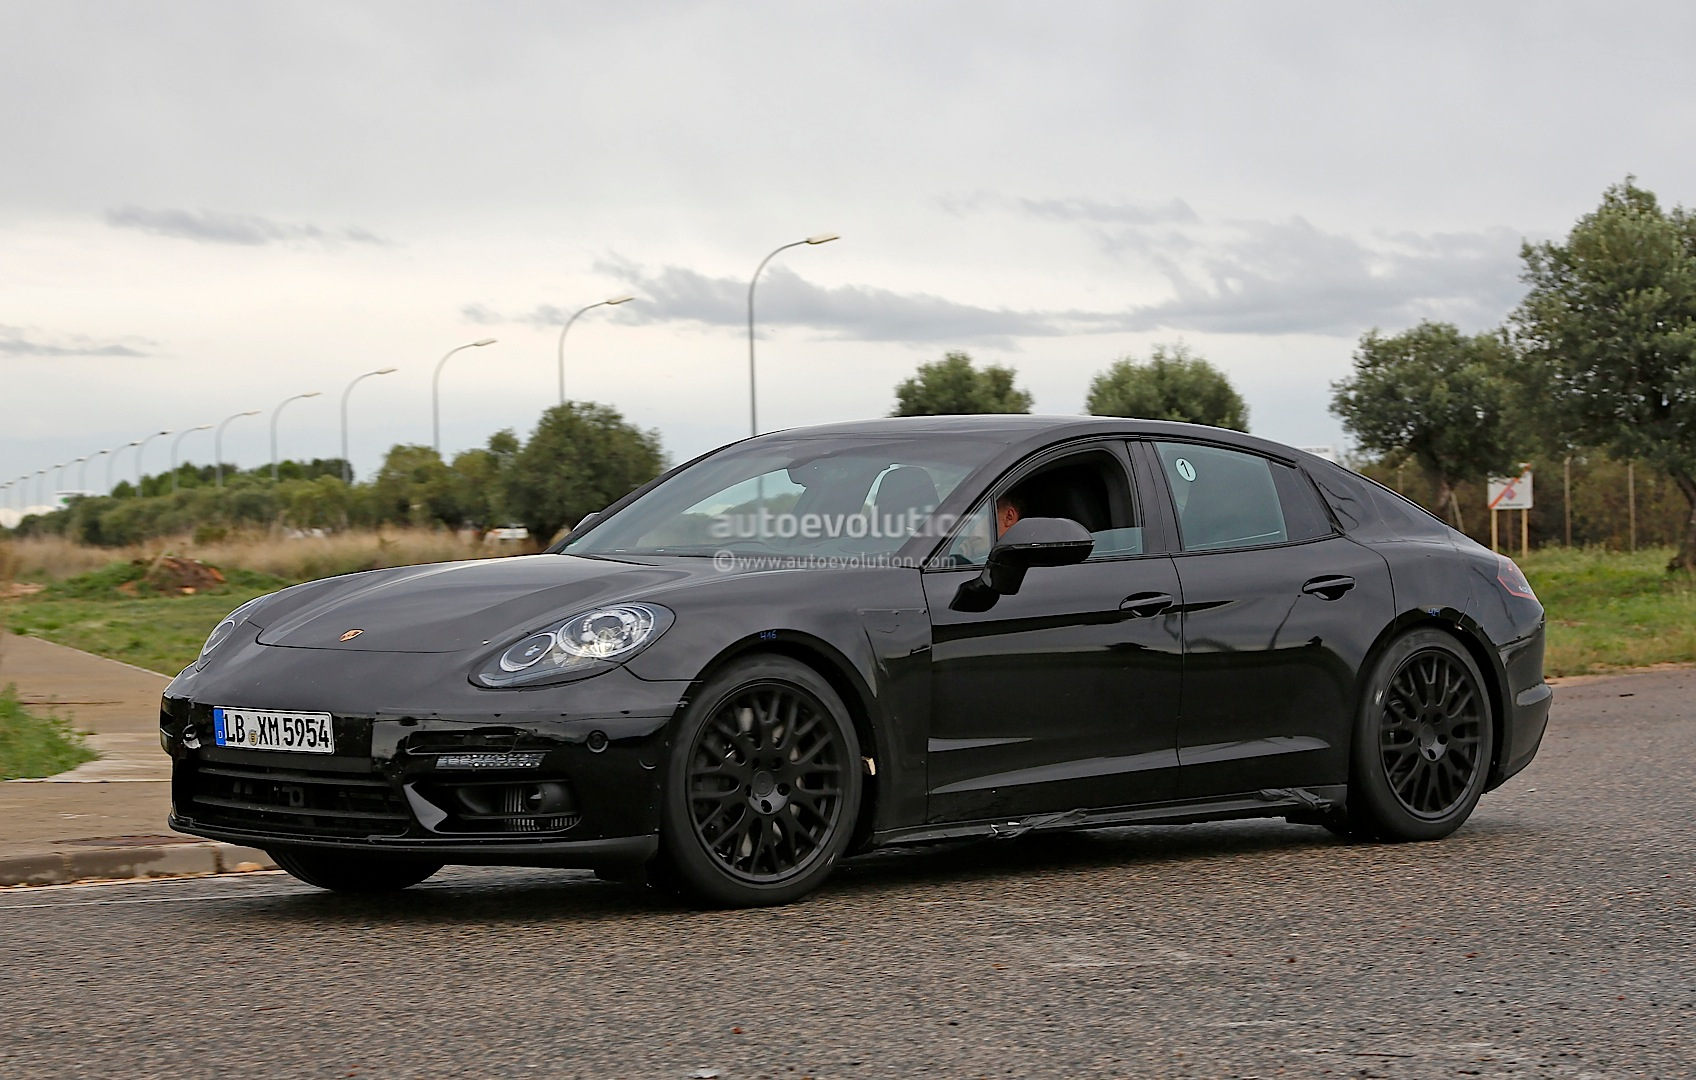 2016 Porsche Panamera Prototype Spied Will Get All New V8